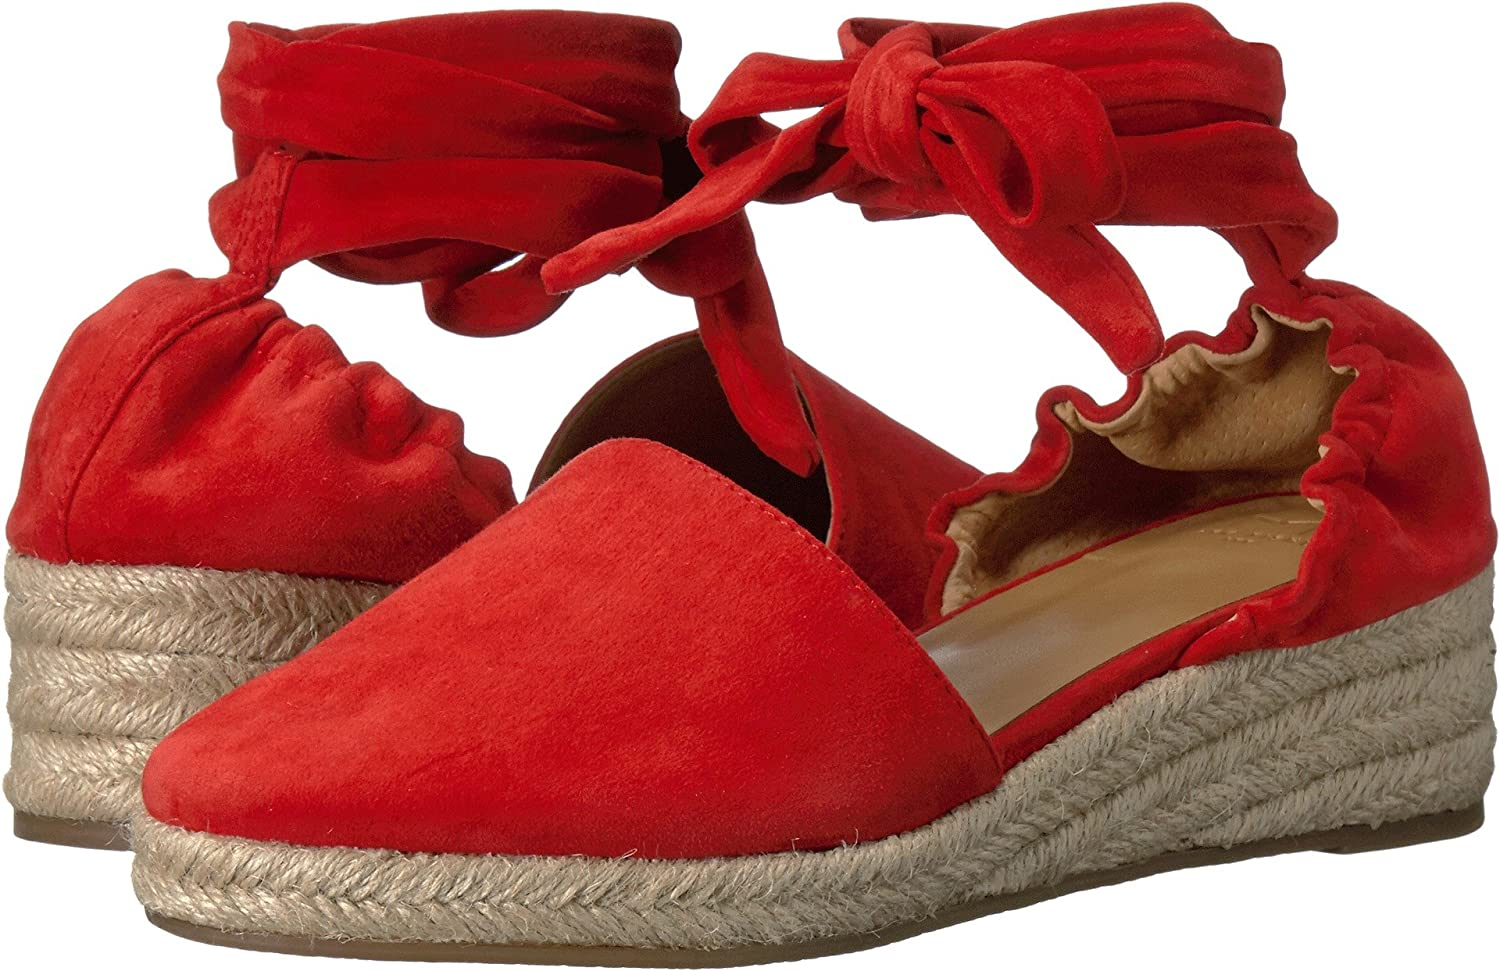 Marc Fisher Womens Baylee Lace up Braided Platform Sandals B072PCFV7G 9.5 B(M) US|Medium Red Suede